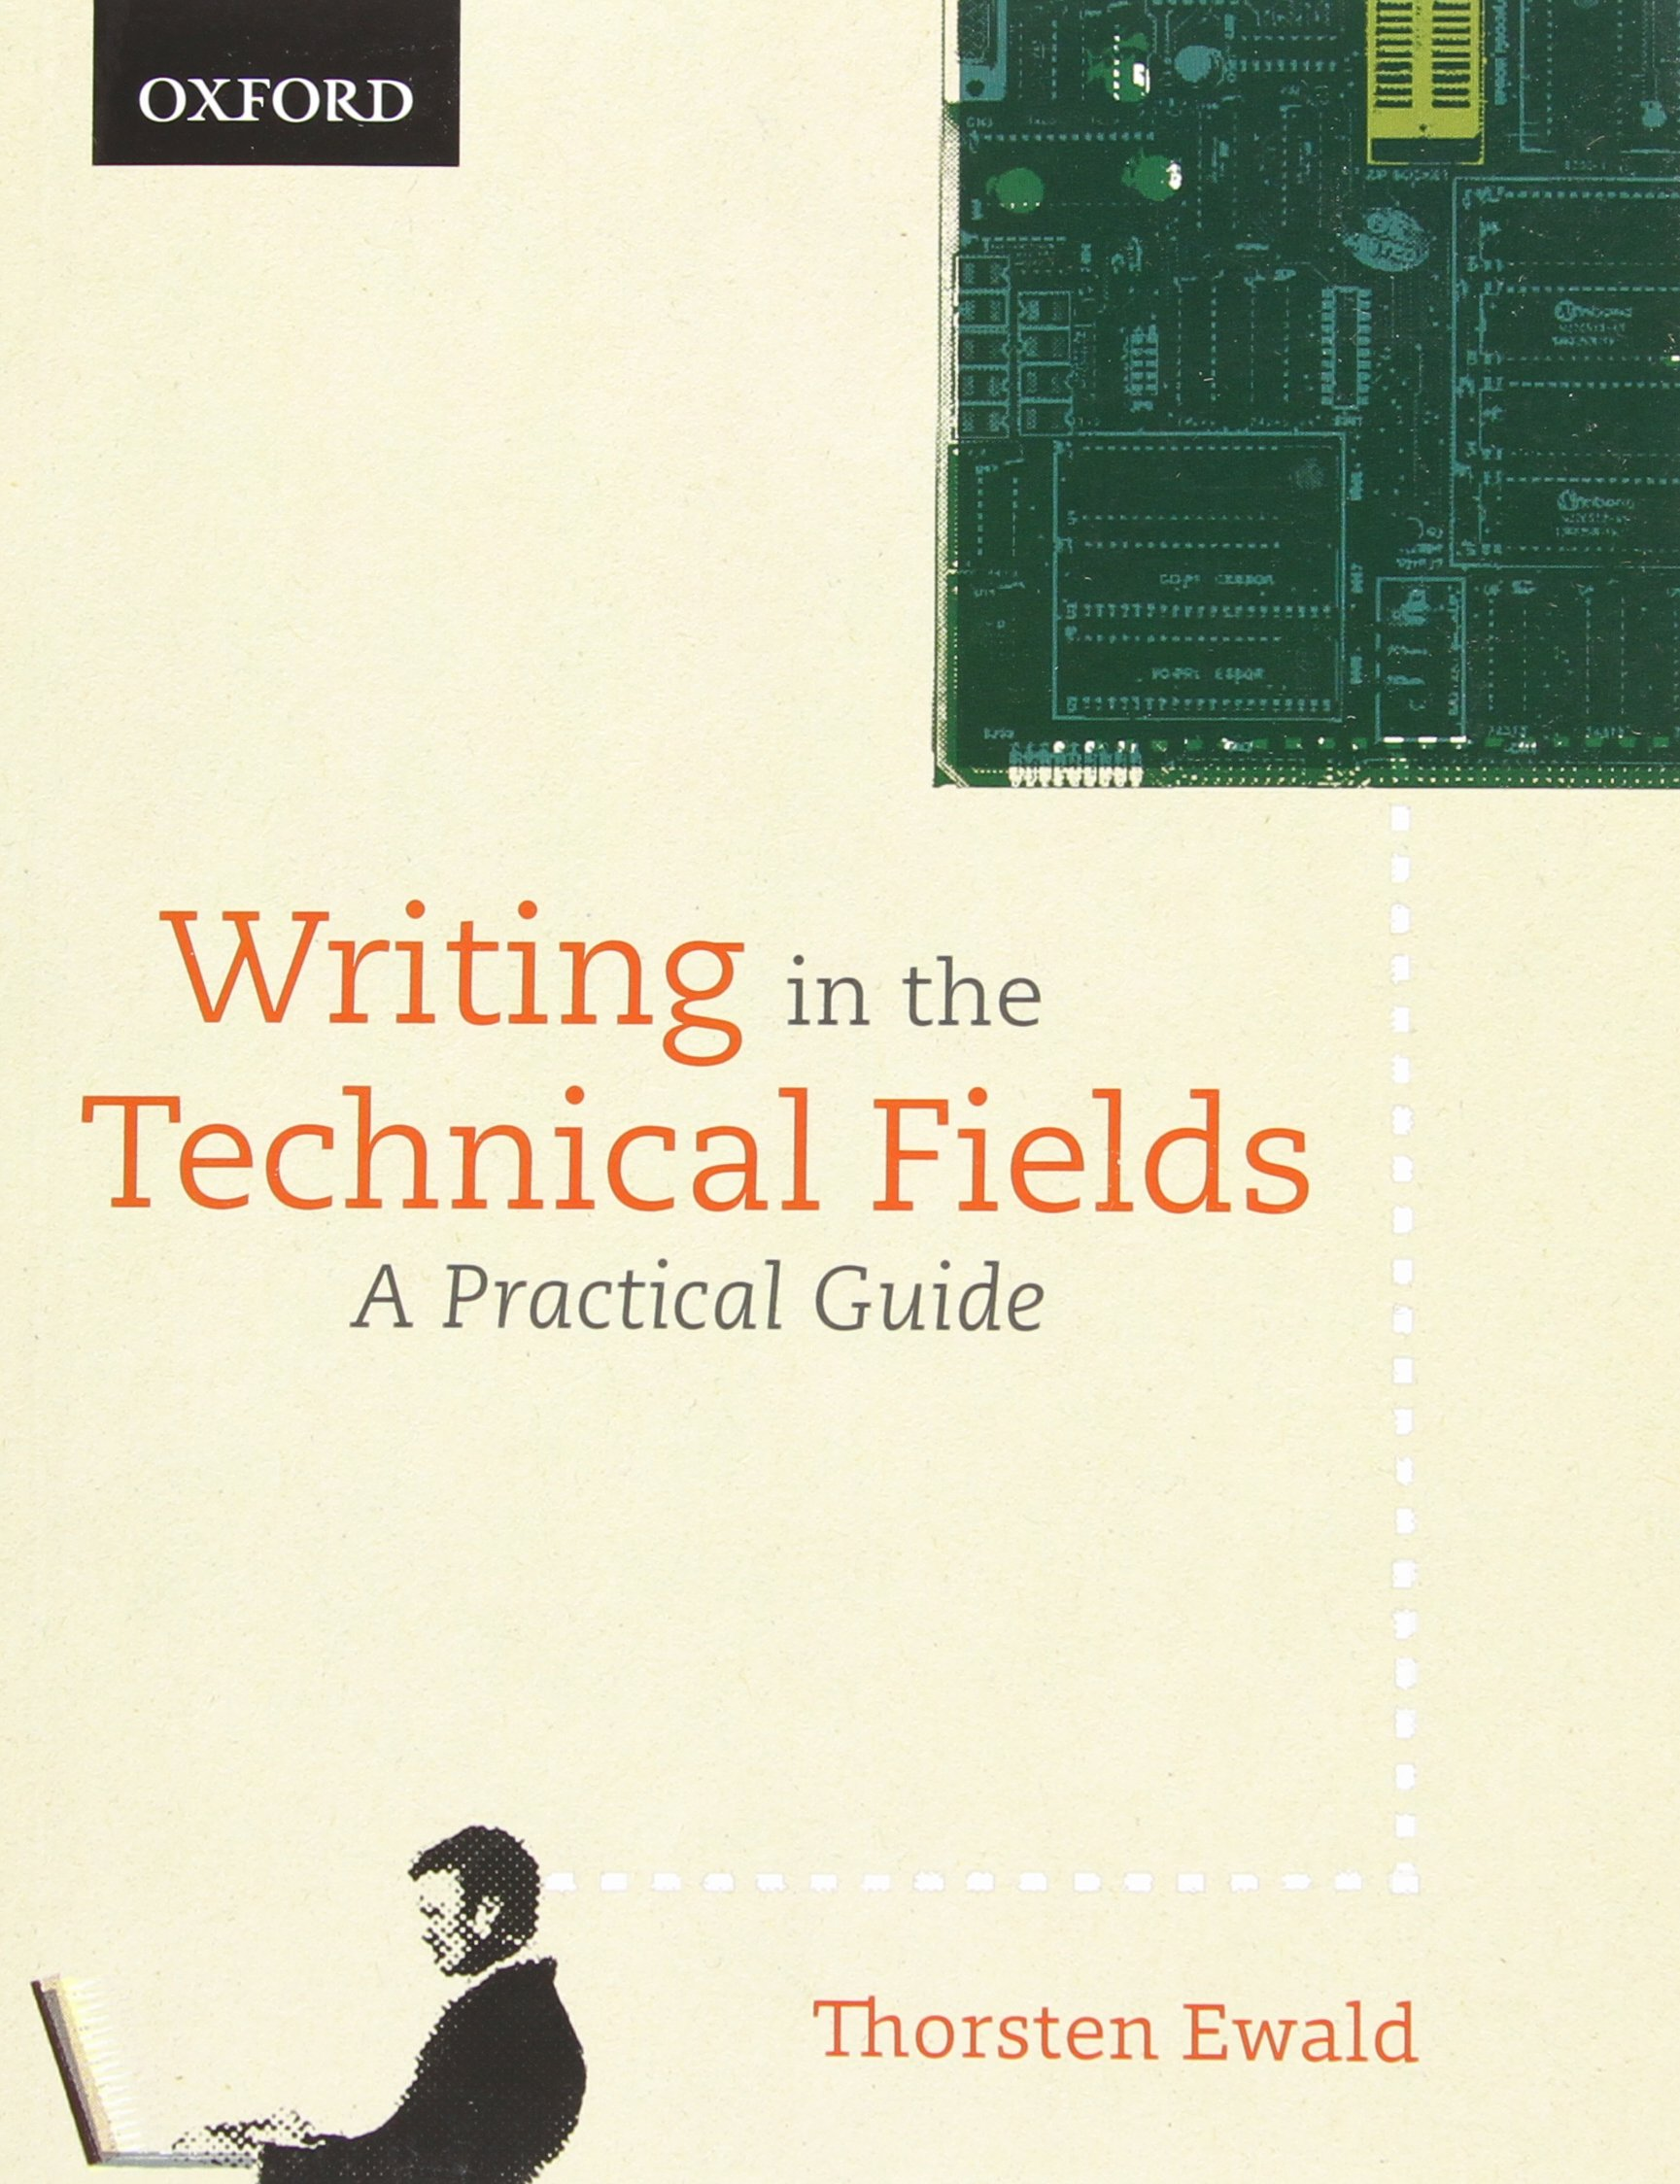 Writing in the technical fields a practical guide thorsten ewald writing in the technical fields a practical guide thorsten ewald 9780195449082 books amazon fandeluxe Image collections